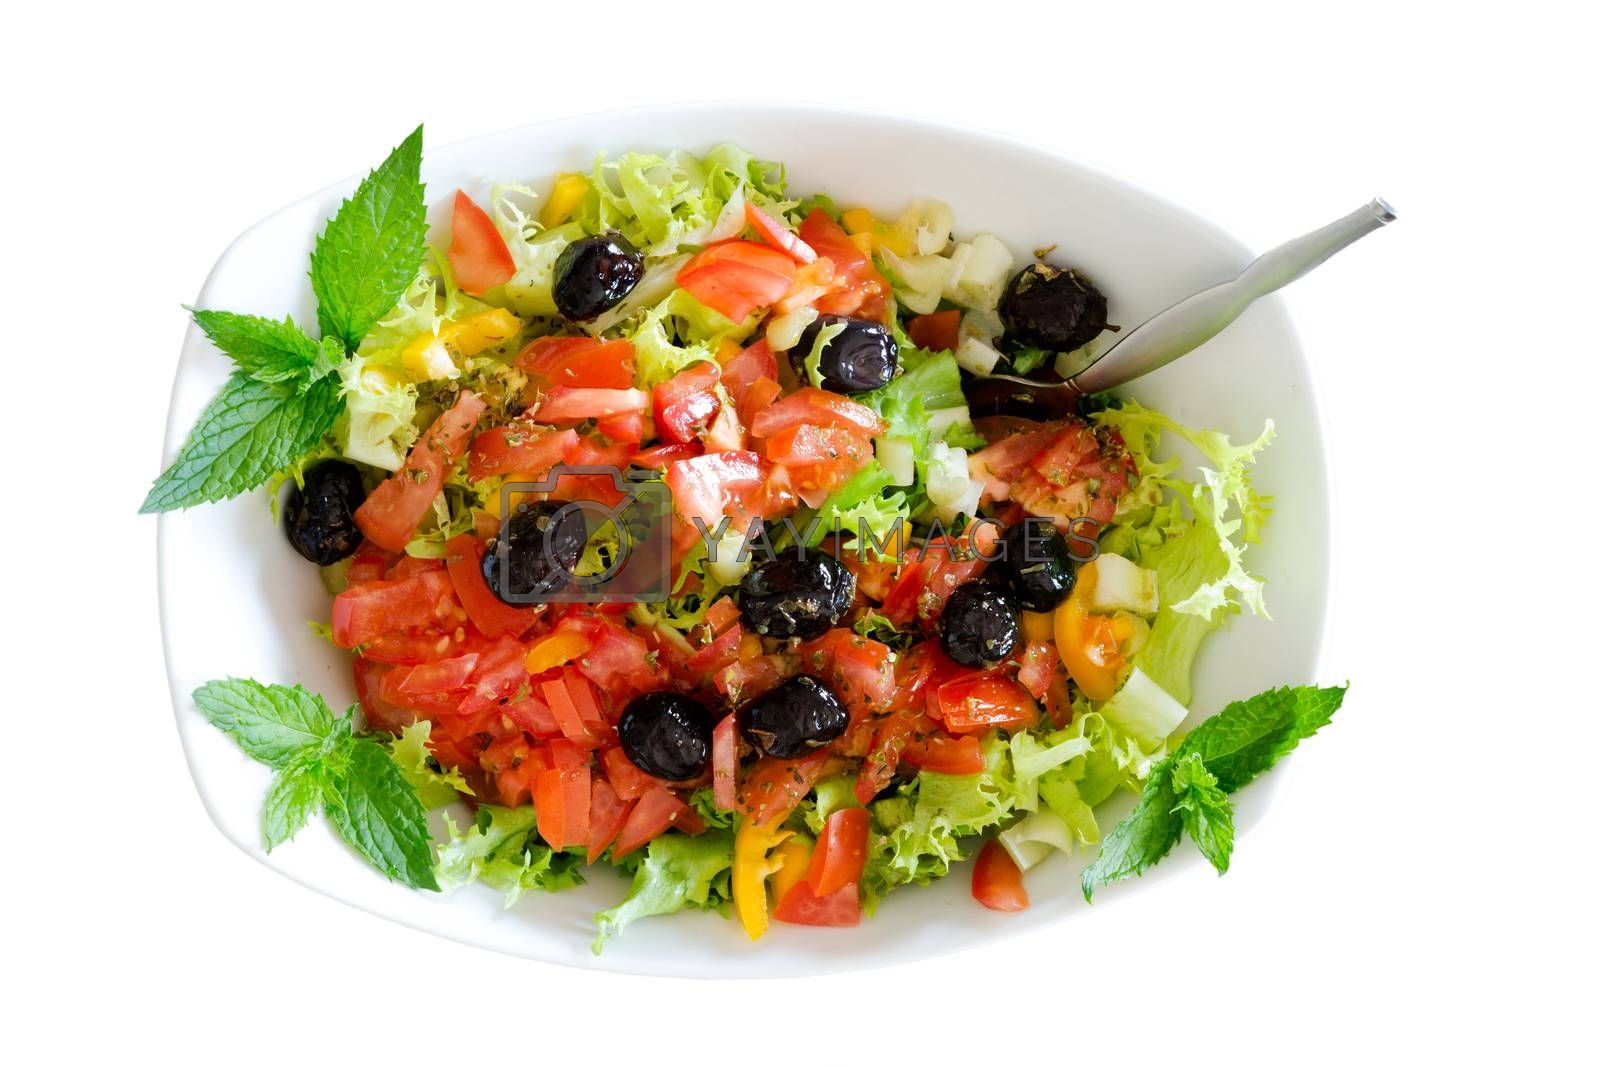 Isolated fresh plain salad garnished with mint by coskun